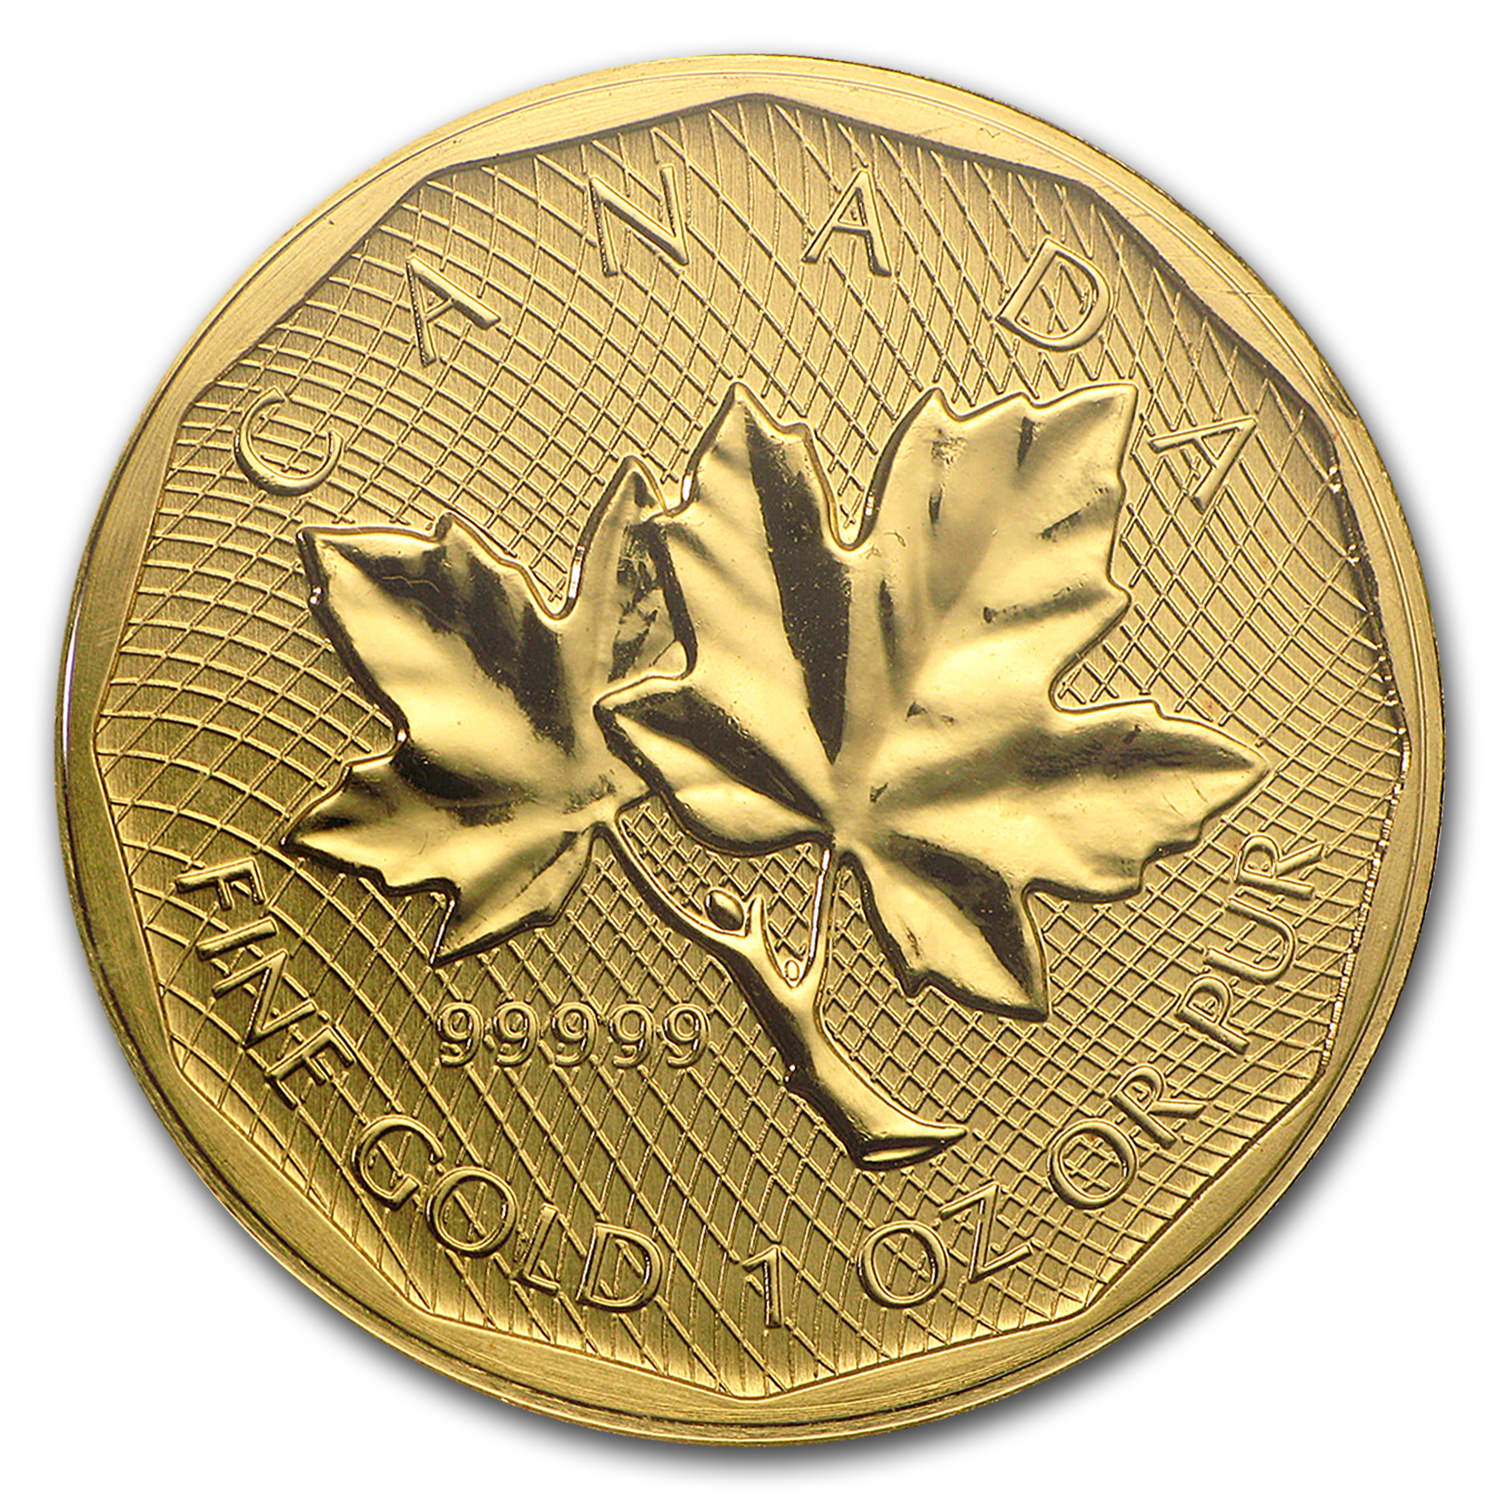 2008 Canada 1 oz Gold Maple Leaf .99999 BU (No Assay)